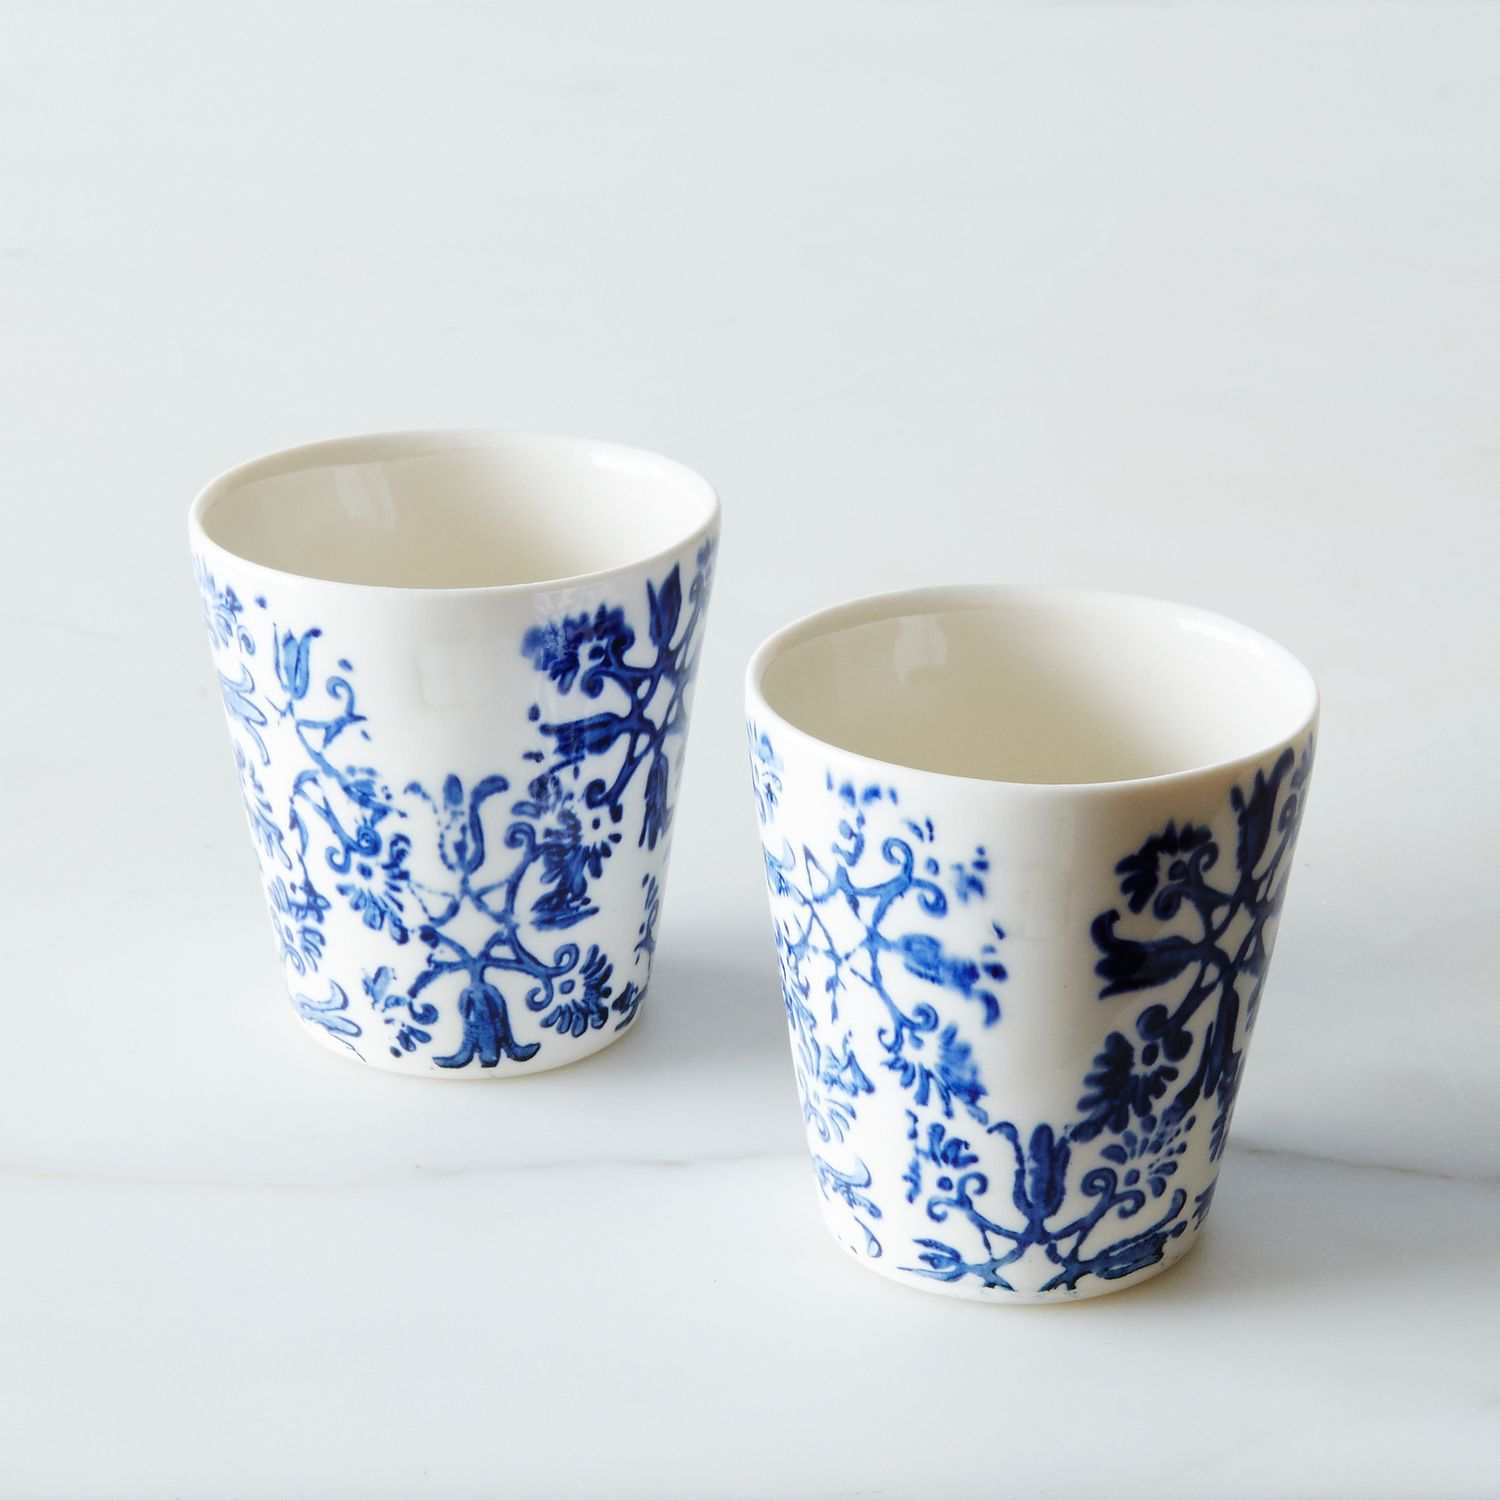 Floral Espresso Cups Set Of 2 Small Ceramic Cups